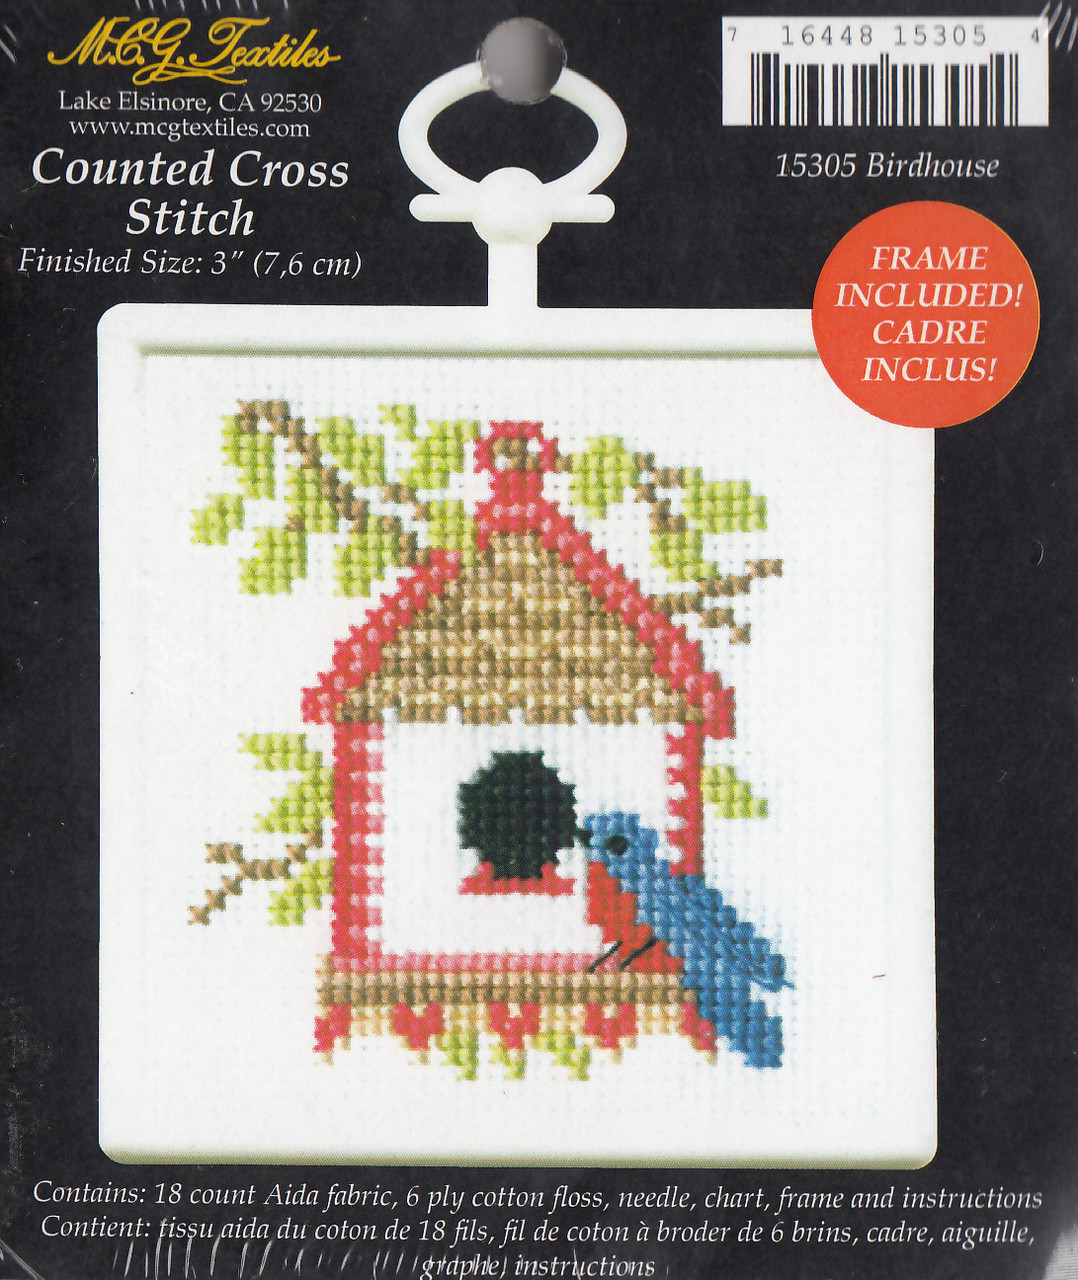 Candamar Mini - Birdhouse